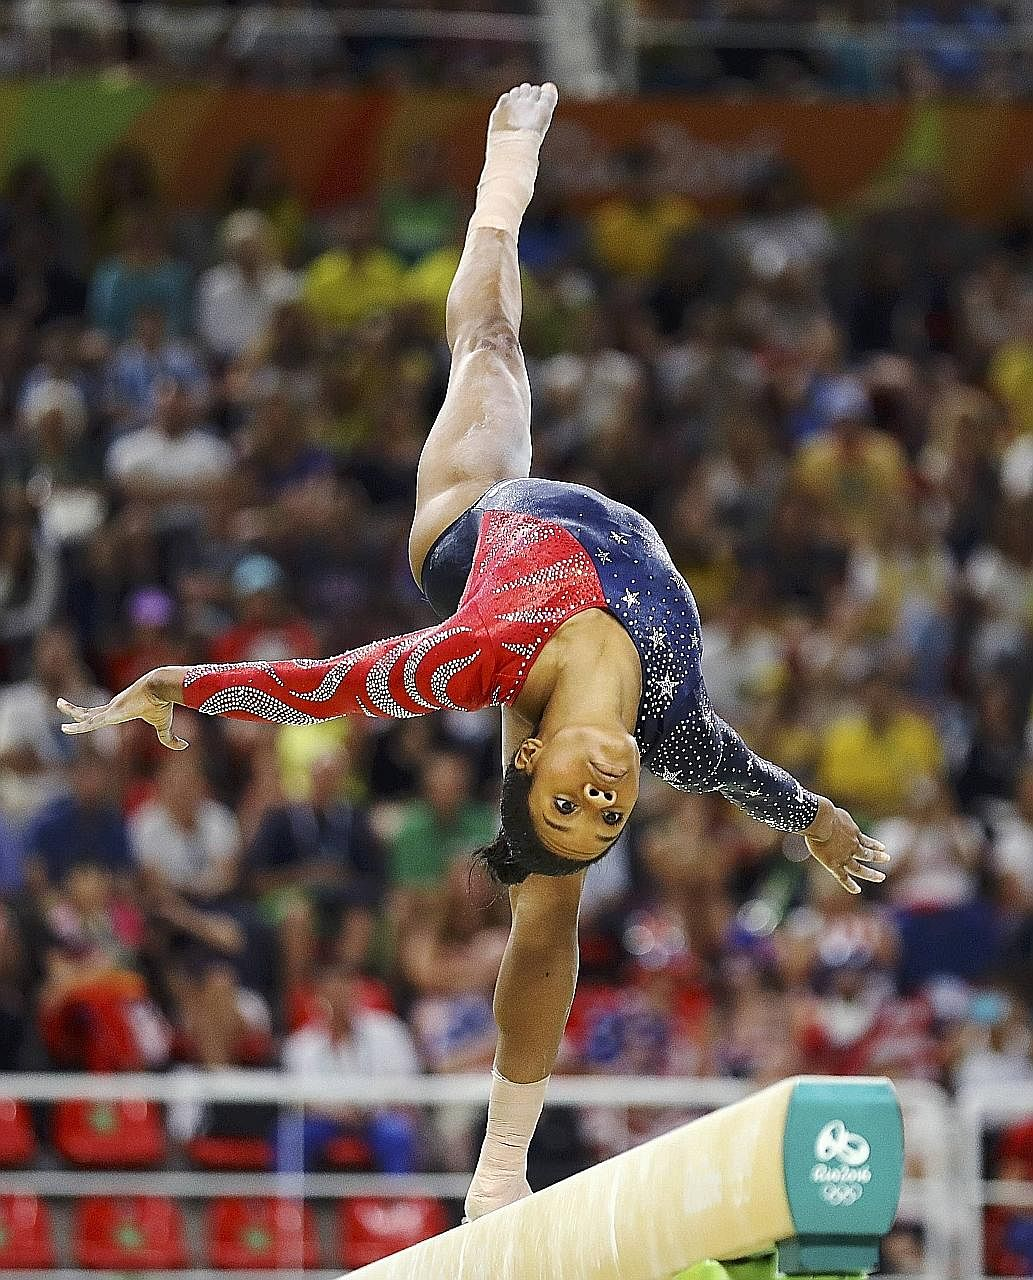 US gymnast Gabby Douglas performing at the 2016 Rio Olympics. In the run-up to the London Games in 2012, it was said that her mother had filed for bankruptcy, brought on partly by the high cost of the gymnast's training.